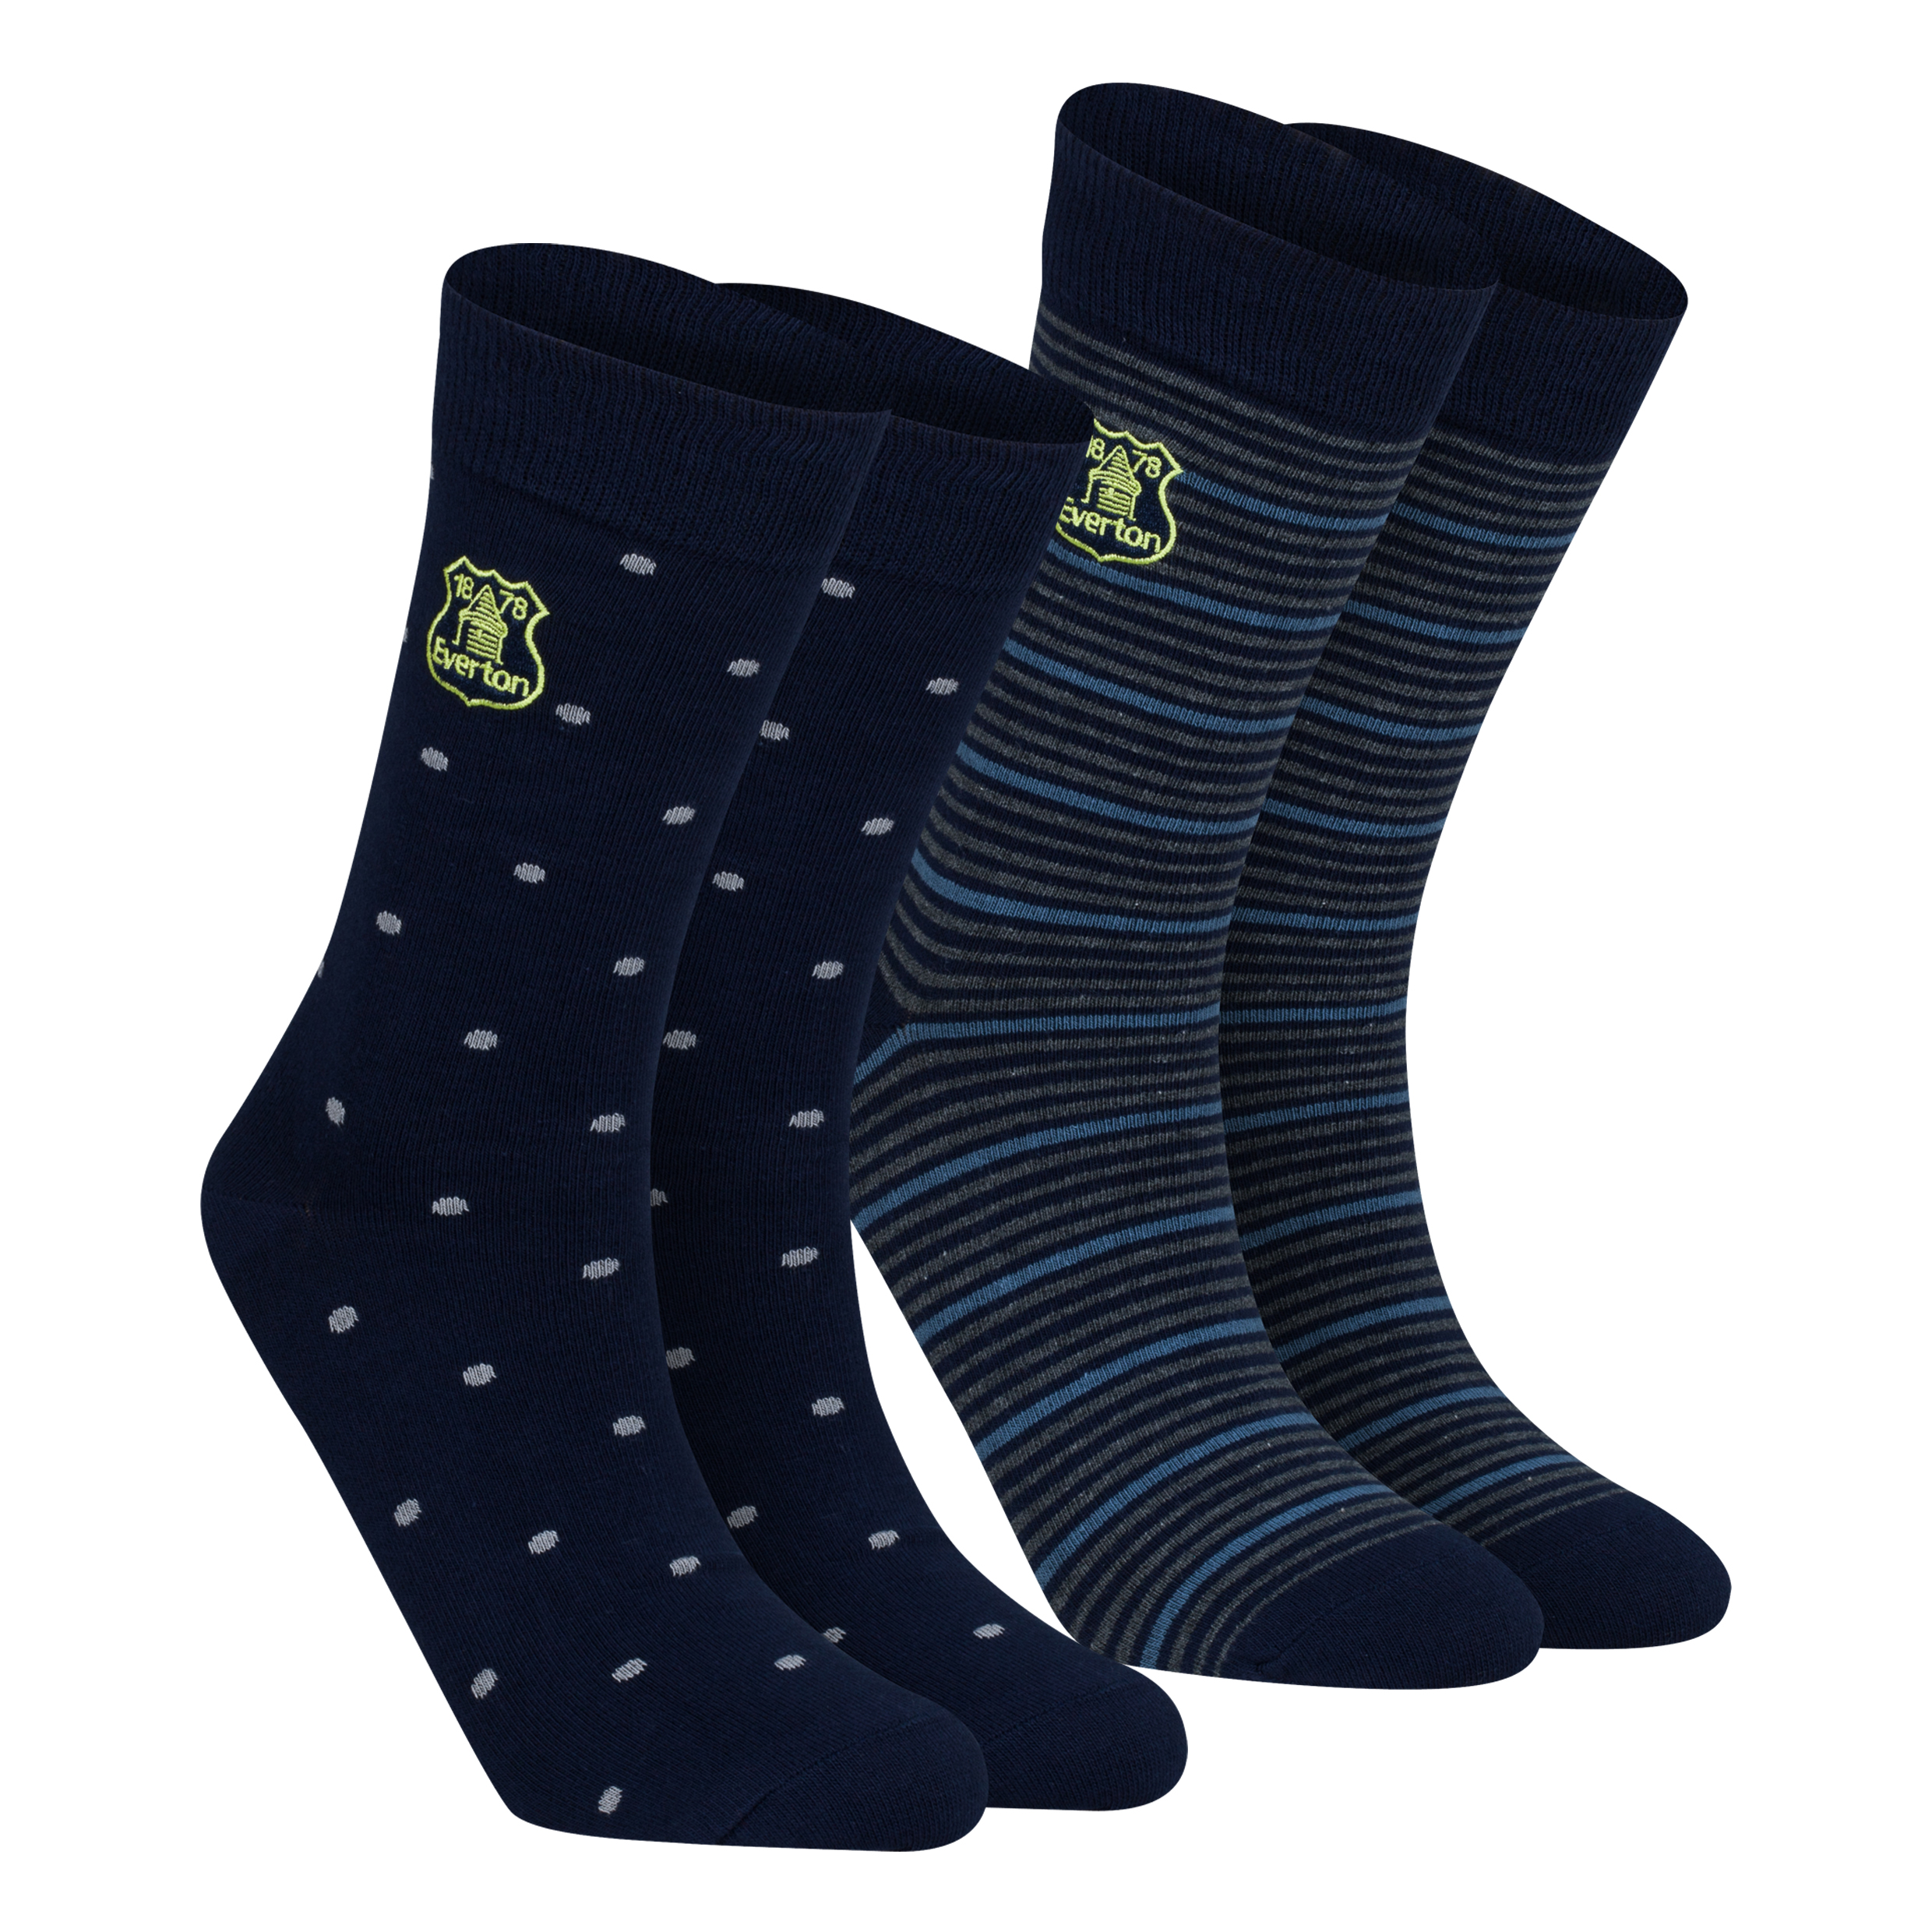 Everton 2Pk Dress Socks - Mens Navy